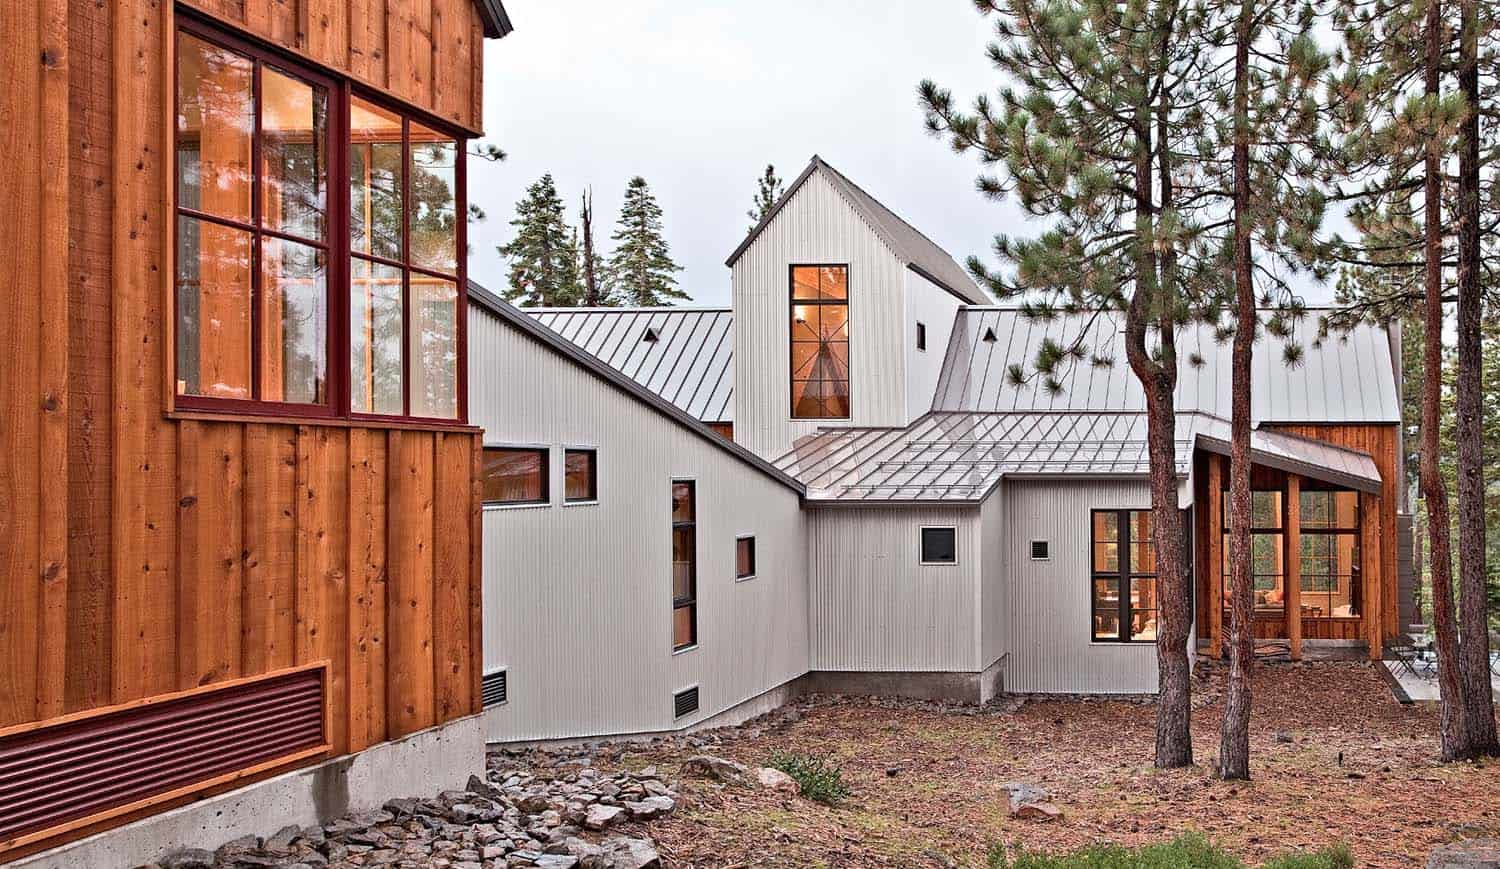 Gorgeous rustic modern home surrounded by woods in lake tahoe for Modern rustic home plans